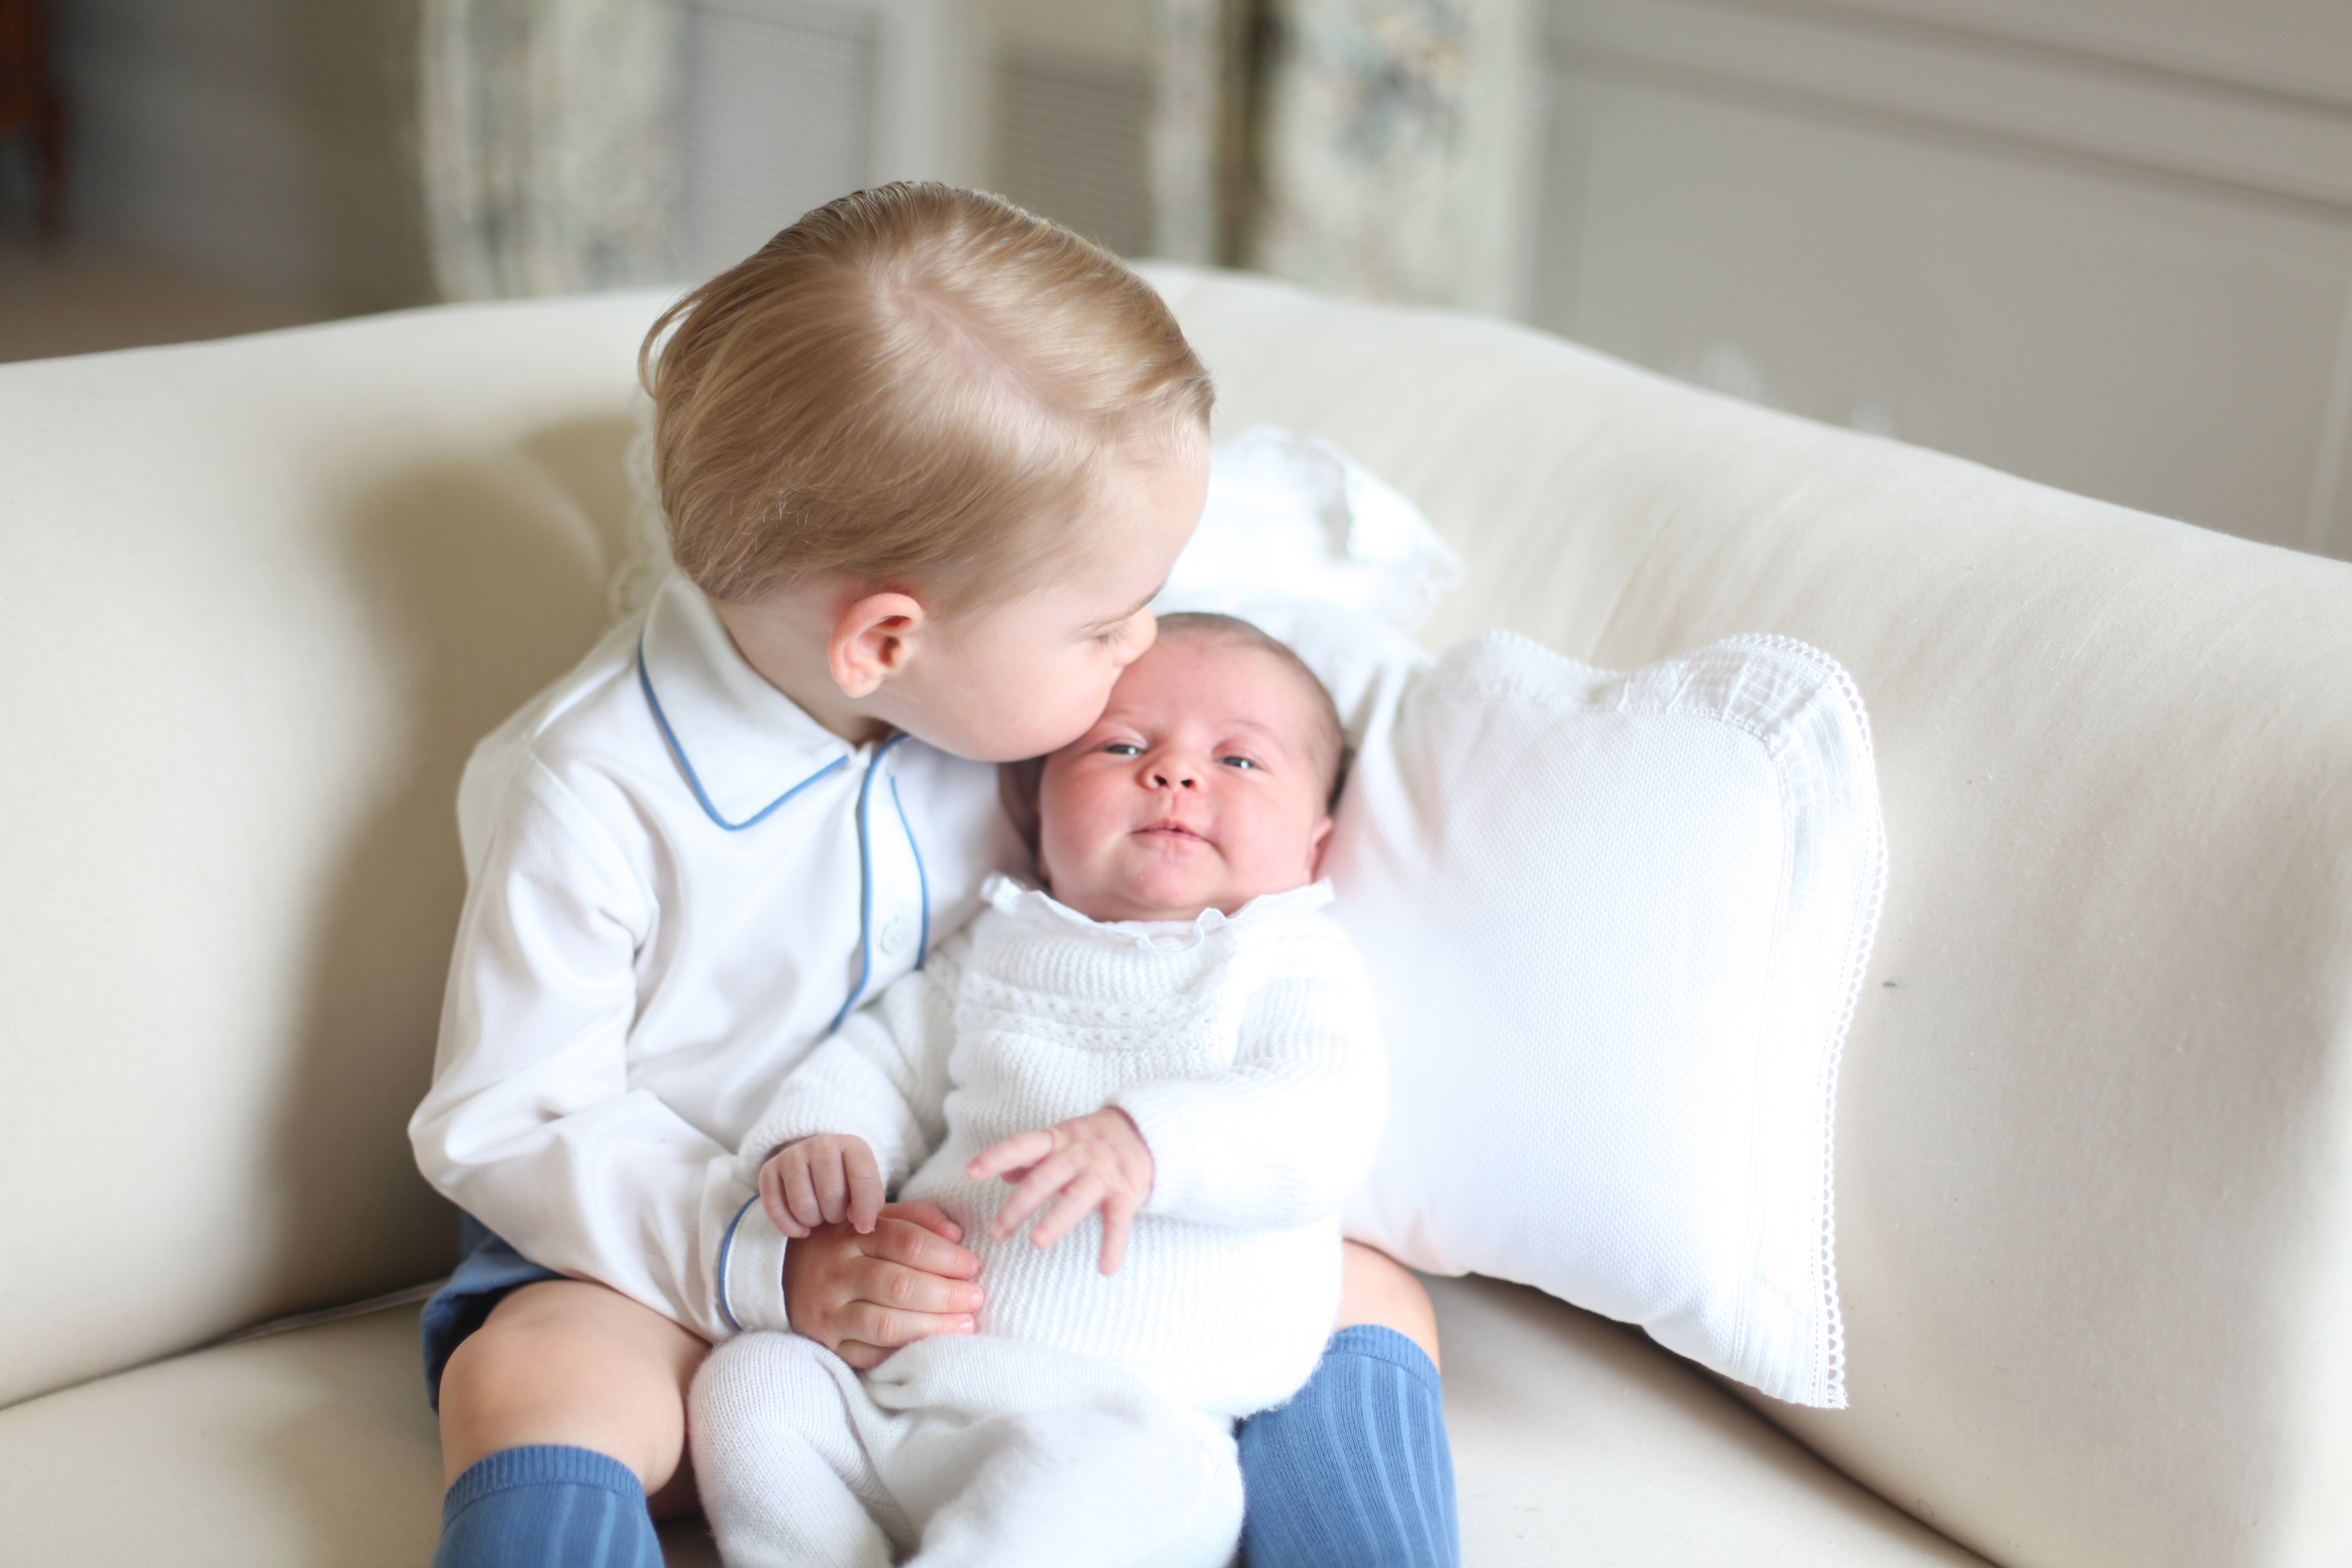 Princess Charlotte first official photos issued by UK palace